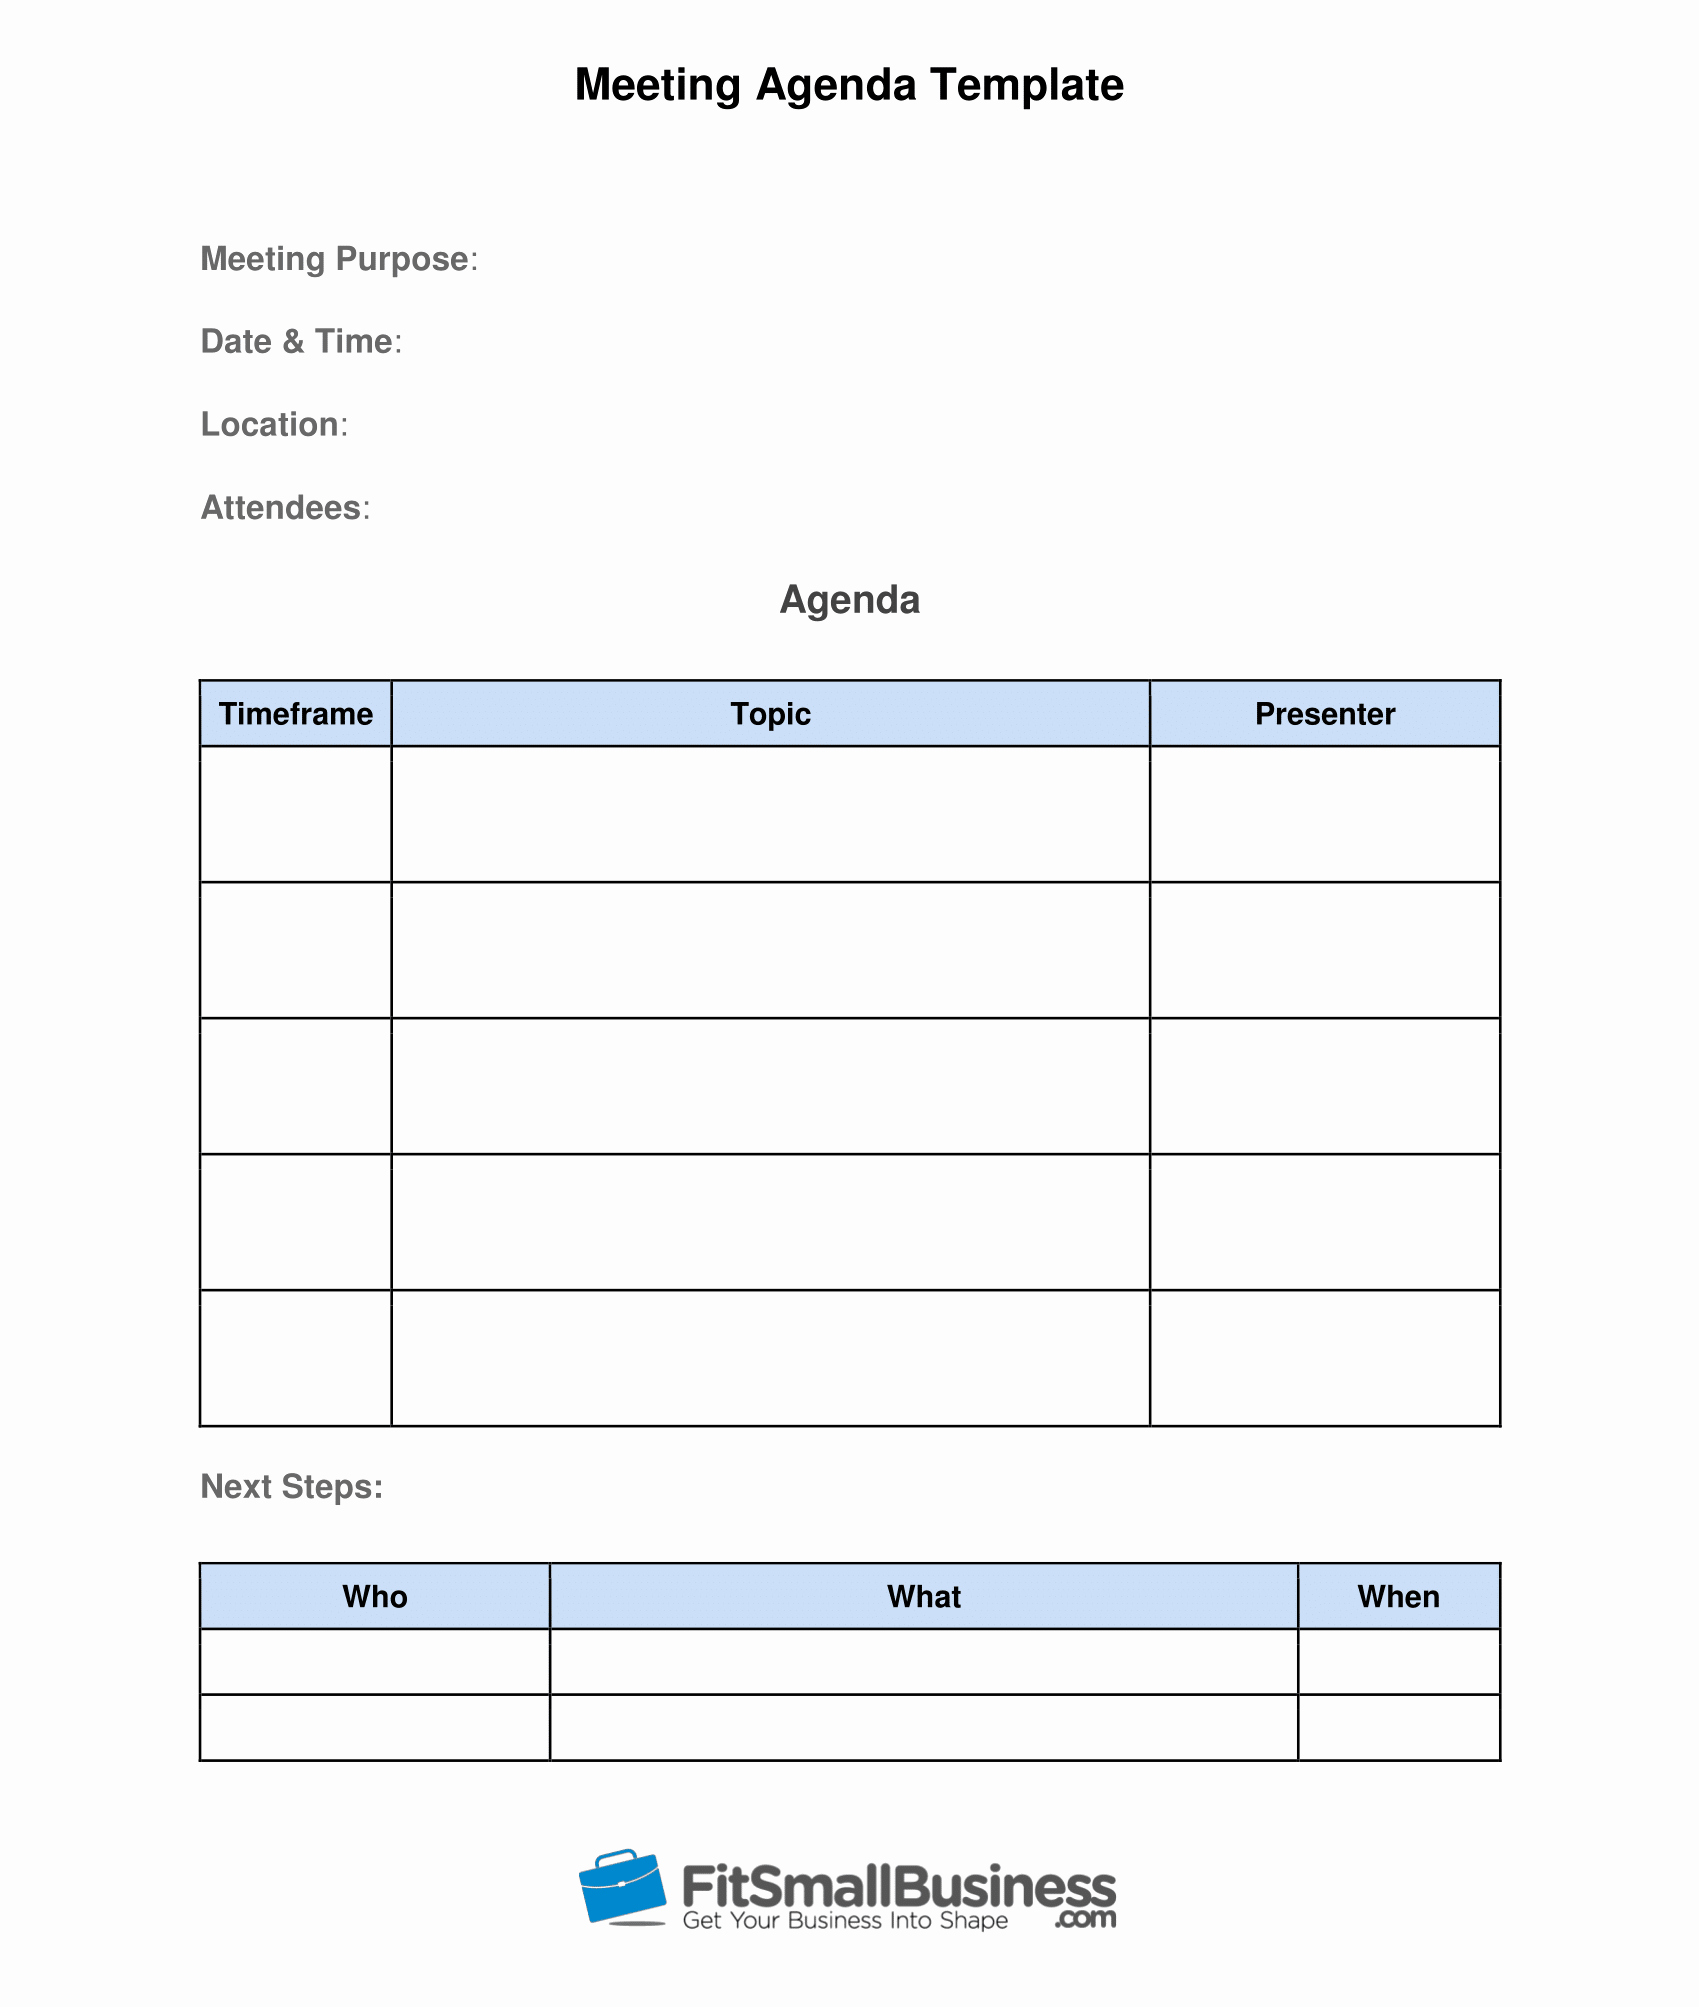 Meeting Notes Template Free Awesome How to Run Effective Meetings In 10 Steps [ Free Template]